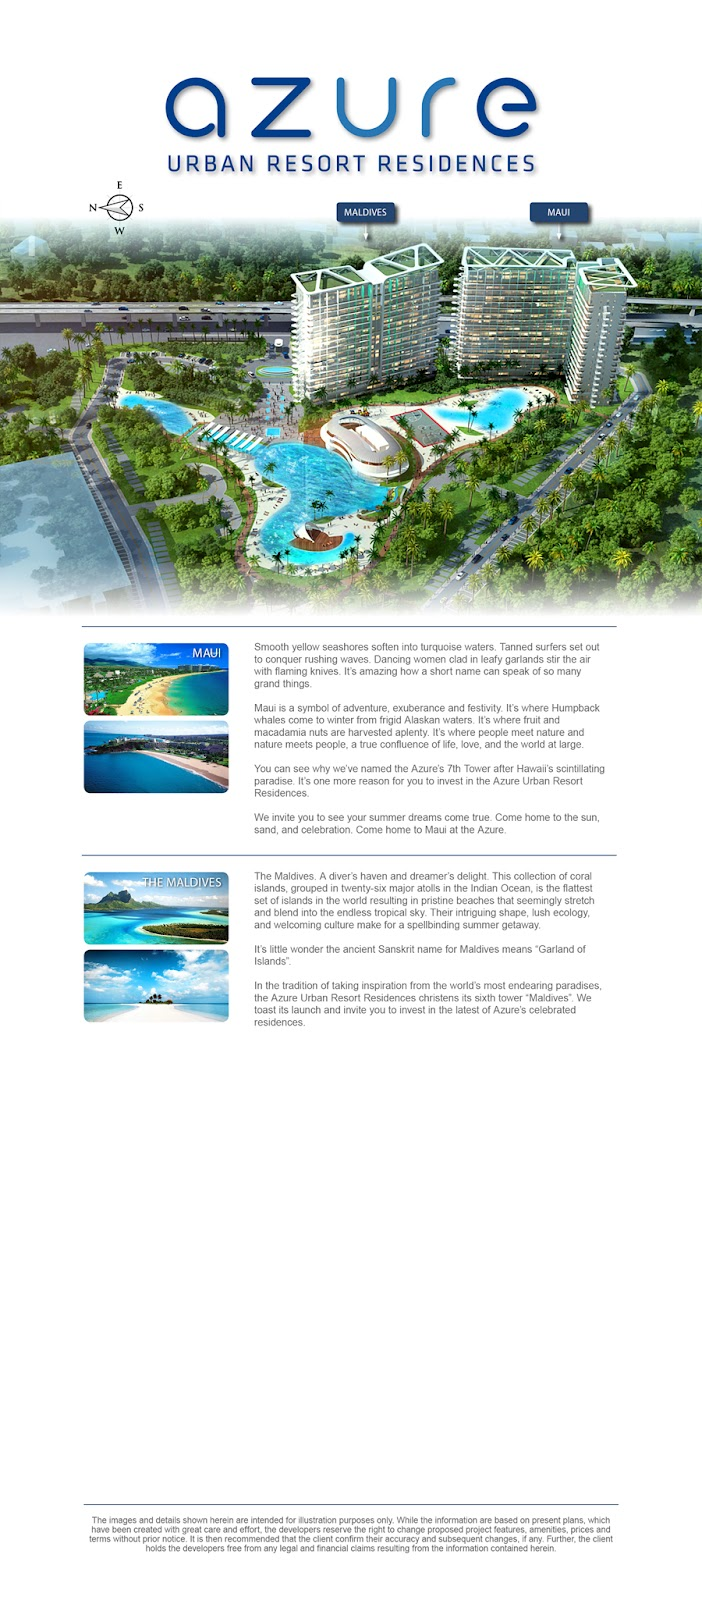 Aqua azure urban resort residences for Acqua salon alabang